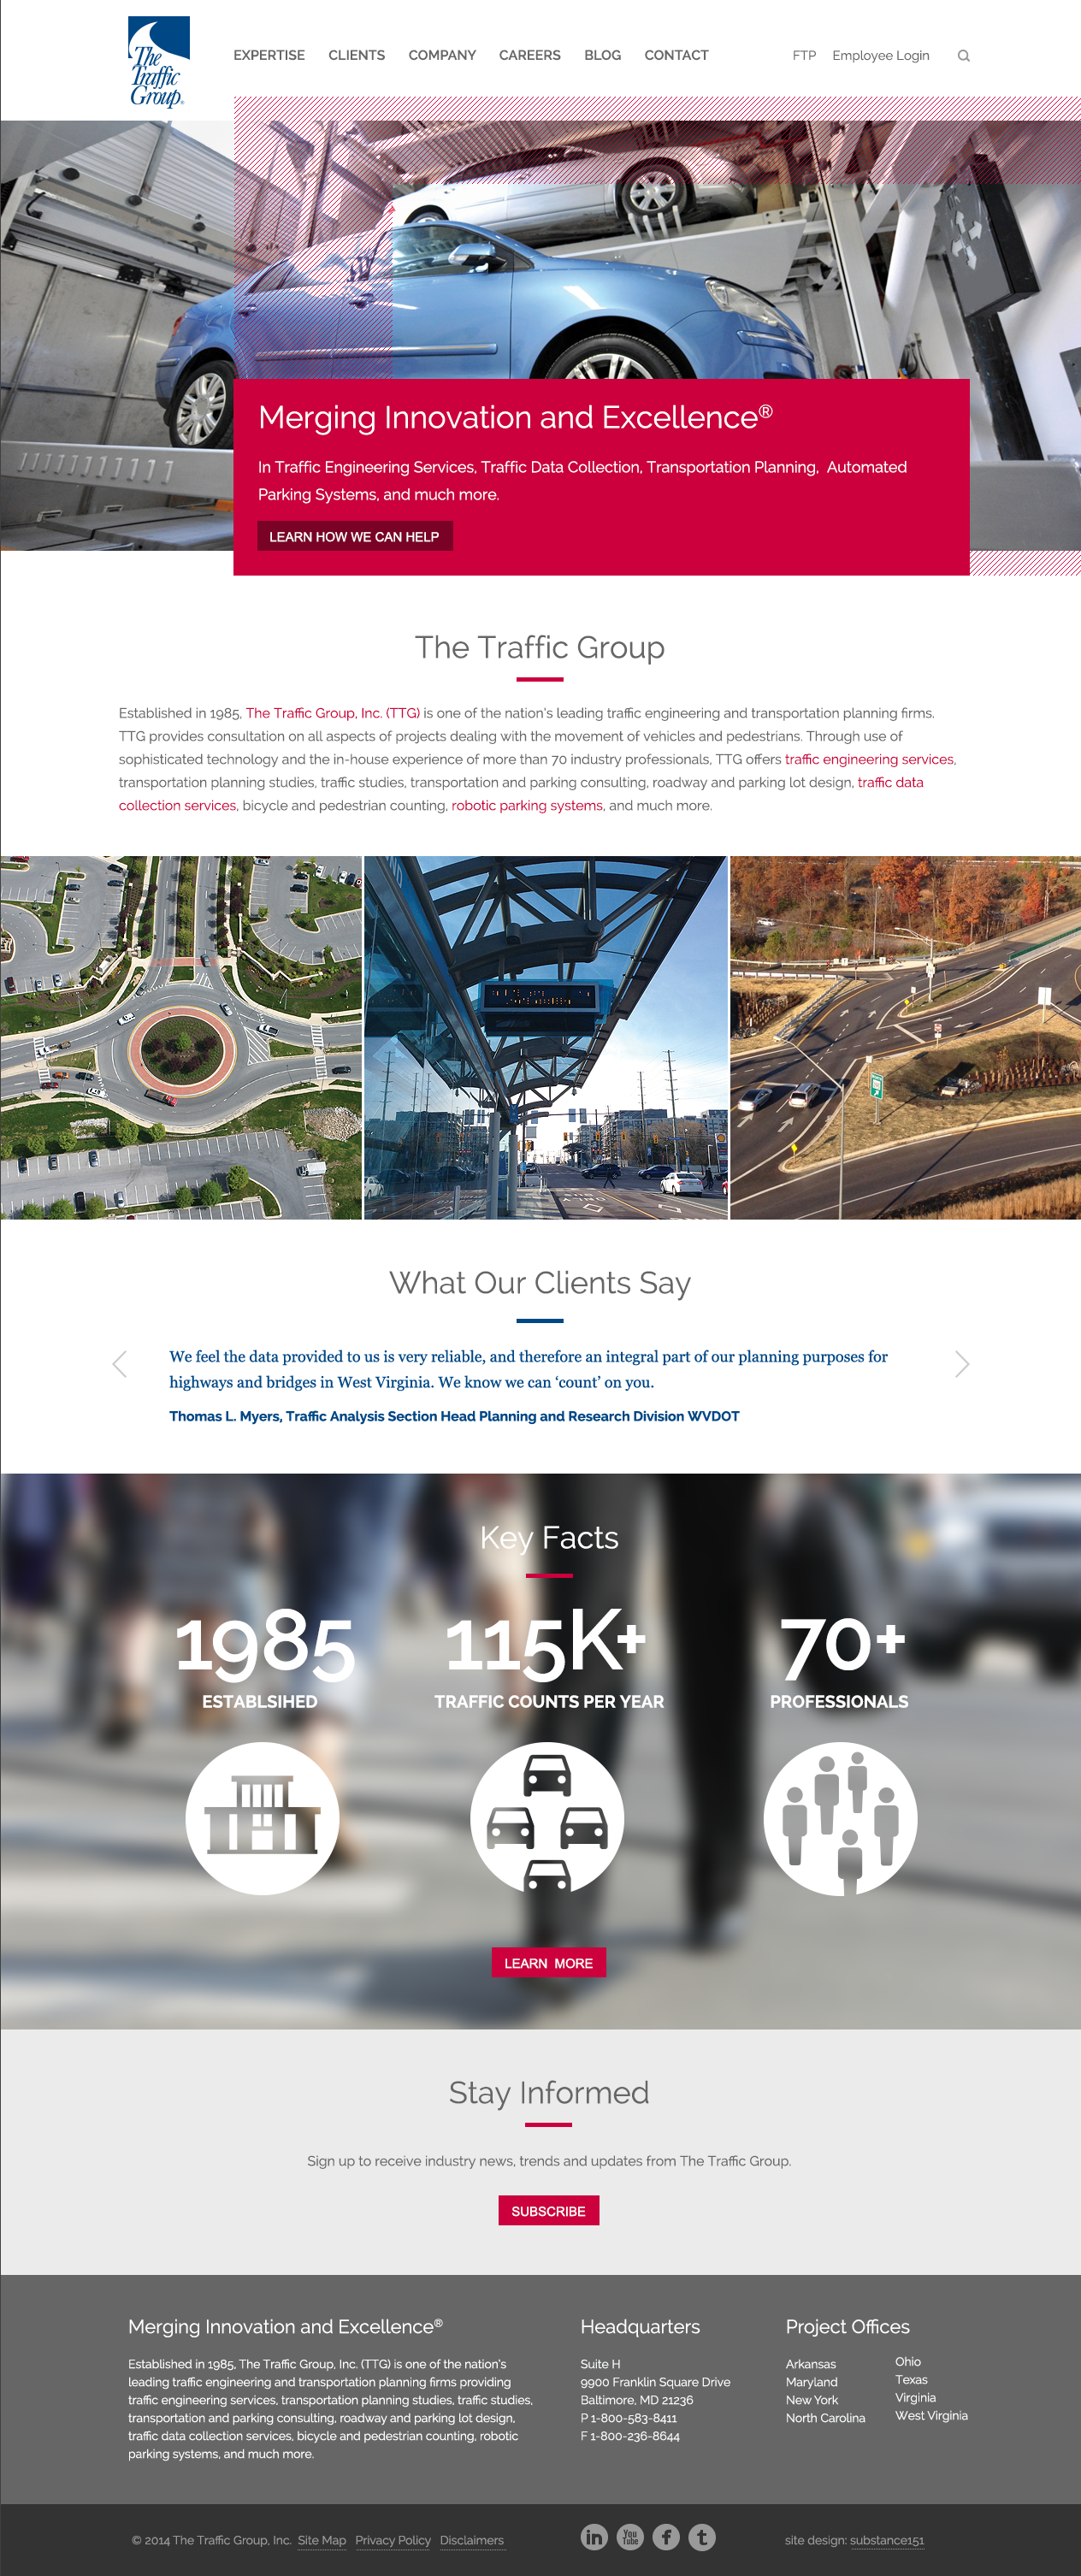 The Traffic Group Marketing Collateral And Website Redesign Website Redesign Marketing Collateral Redesign